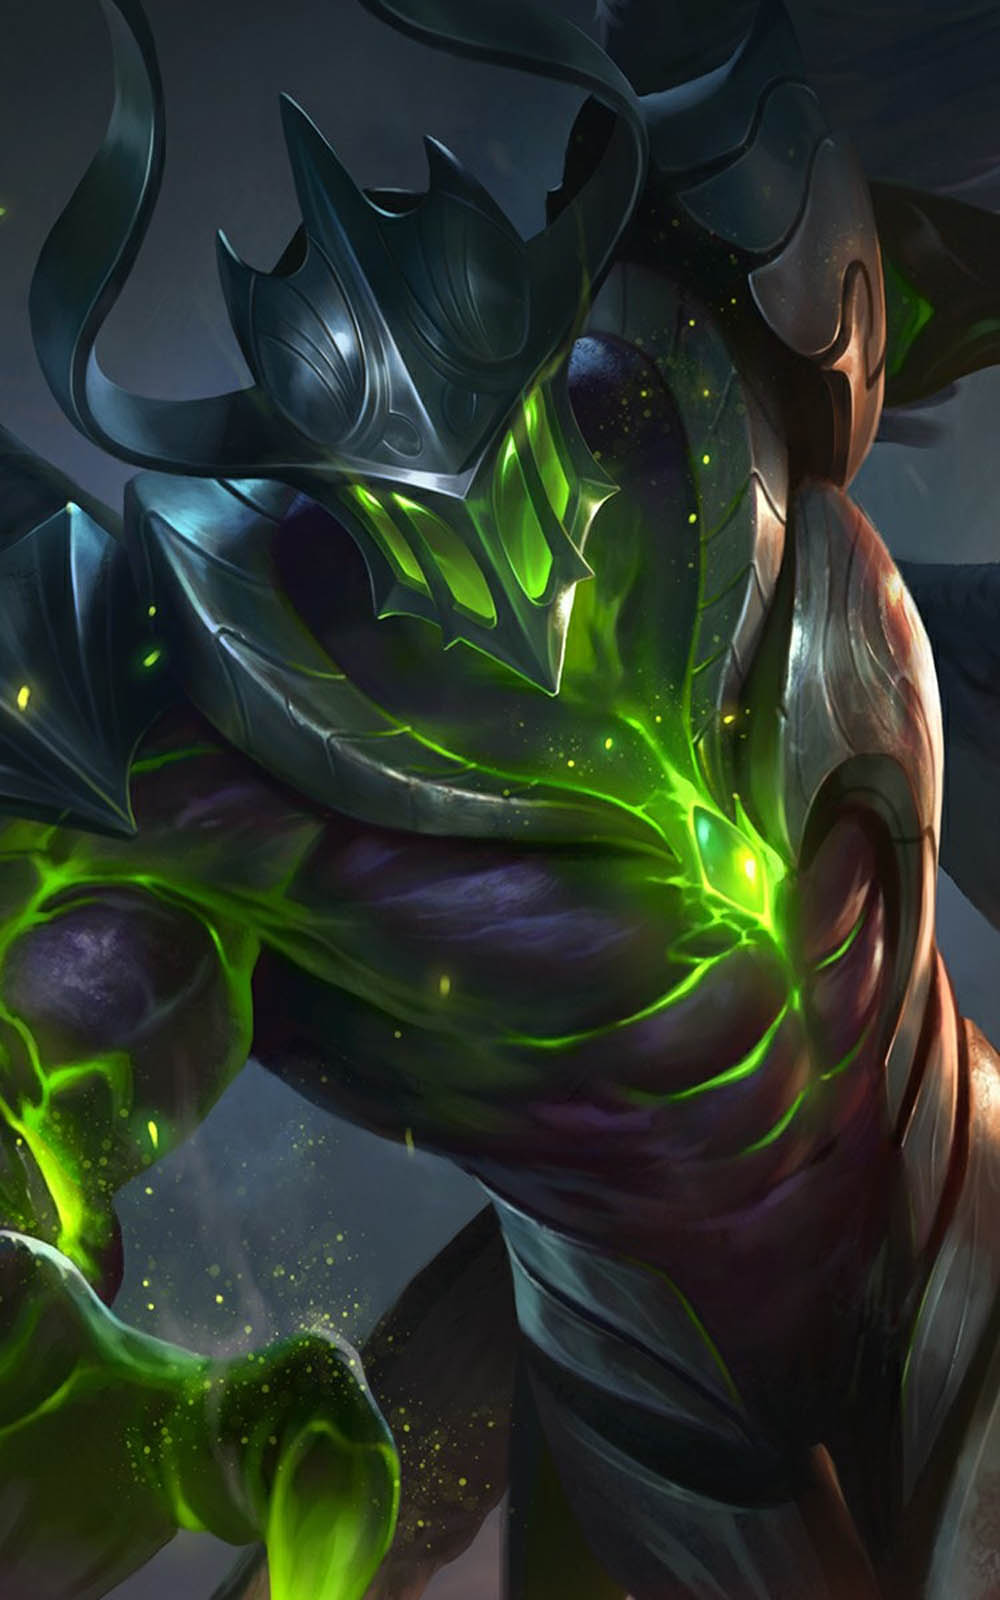 Nightstalker Argus Mobile Legends  Download Free 100% Pure HD Quality Mobile Wallpaper